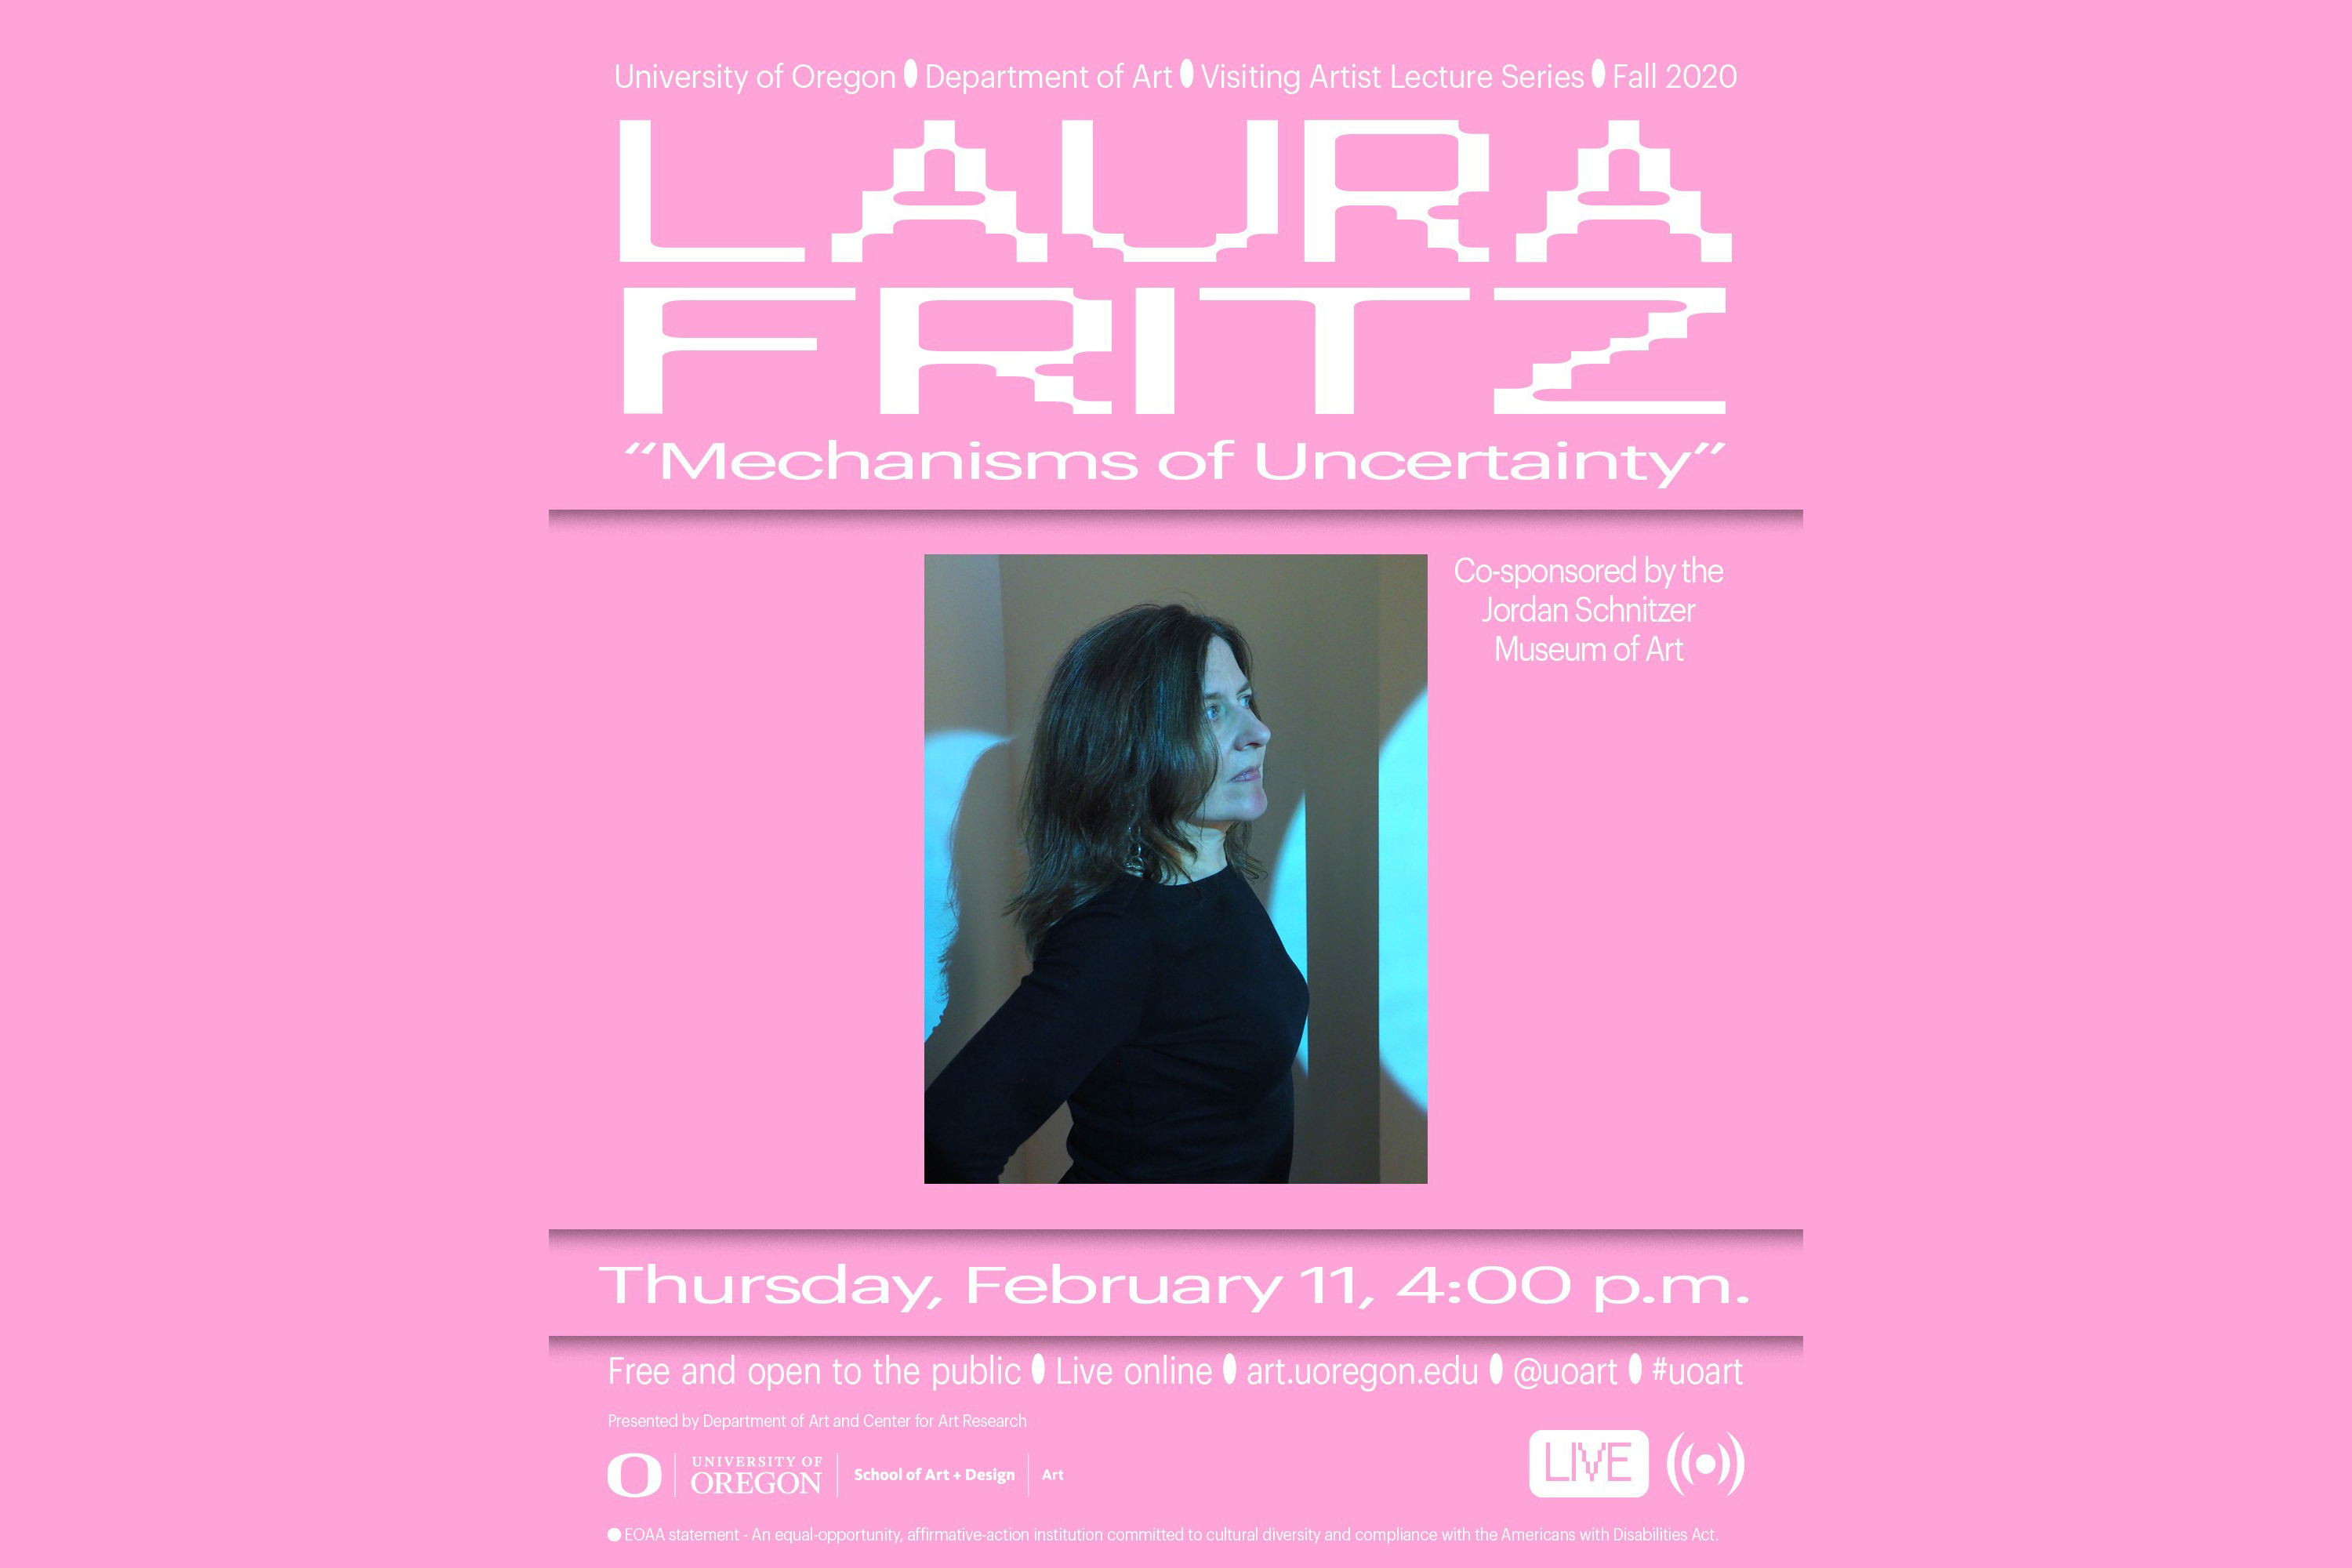 Event poster. Background is completely pink. At the top in white, capital letters, and modern/geometric font type, it reads LAURA FRITZ. Below Laura Fritz, in quotations it reads in white letters, and humanist font type, Mechanism of Uncertainty. Below the text, in the middle of the poster is a side profile photo of the artist. She is wearing black and looking forward, not looking at camera. She is in soft blue lighting. Below the photo are text with event details and logos.